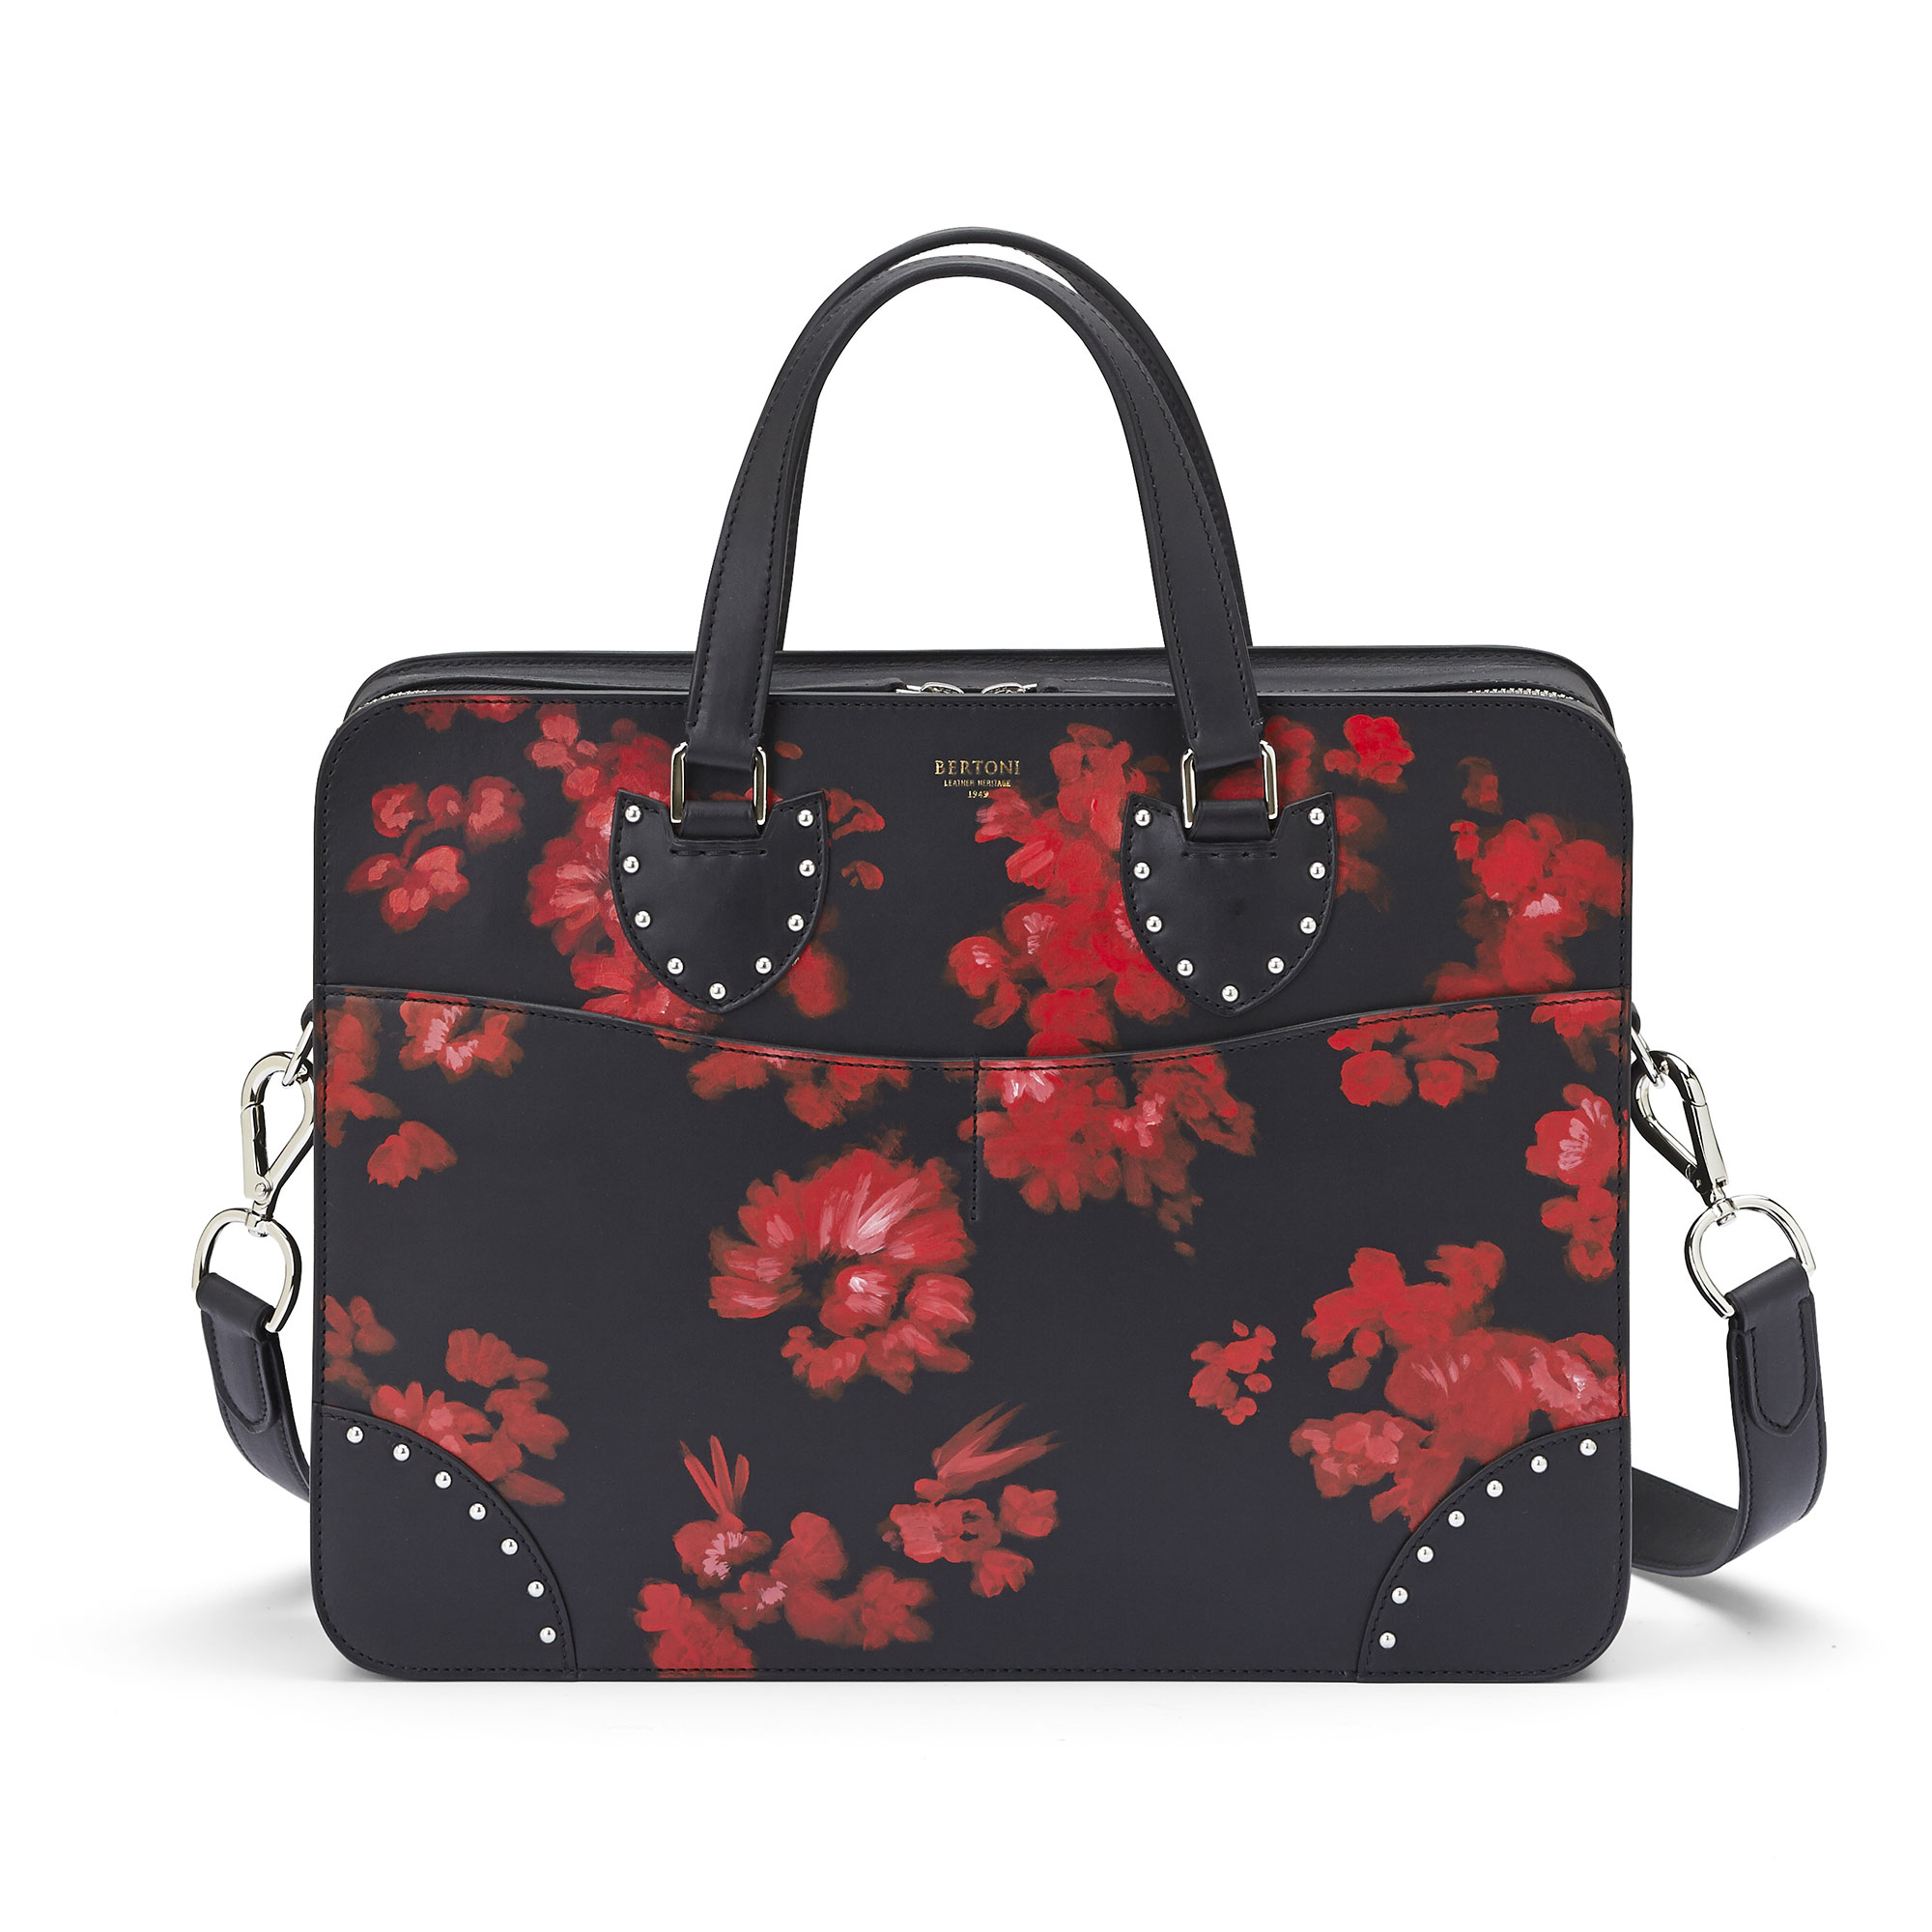 The black with red flowers french calf Double Handle 37 by Bertoni 1949 03